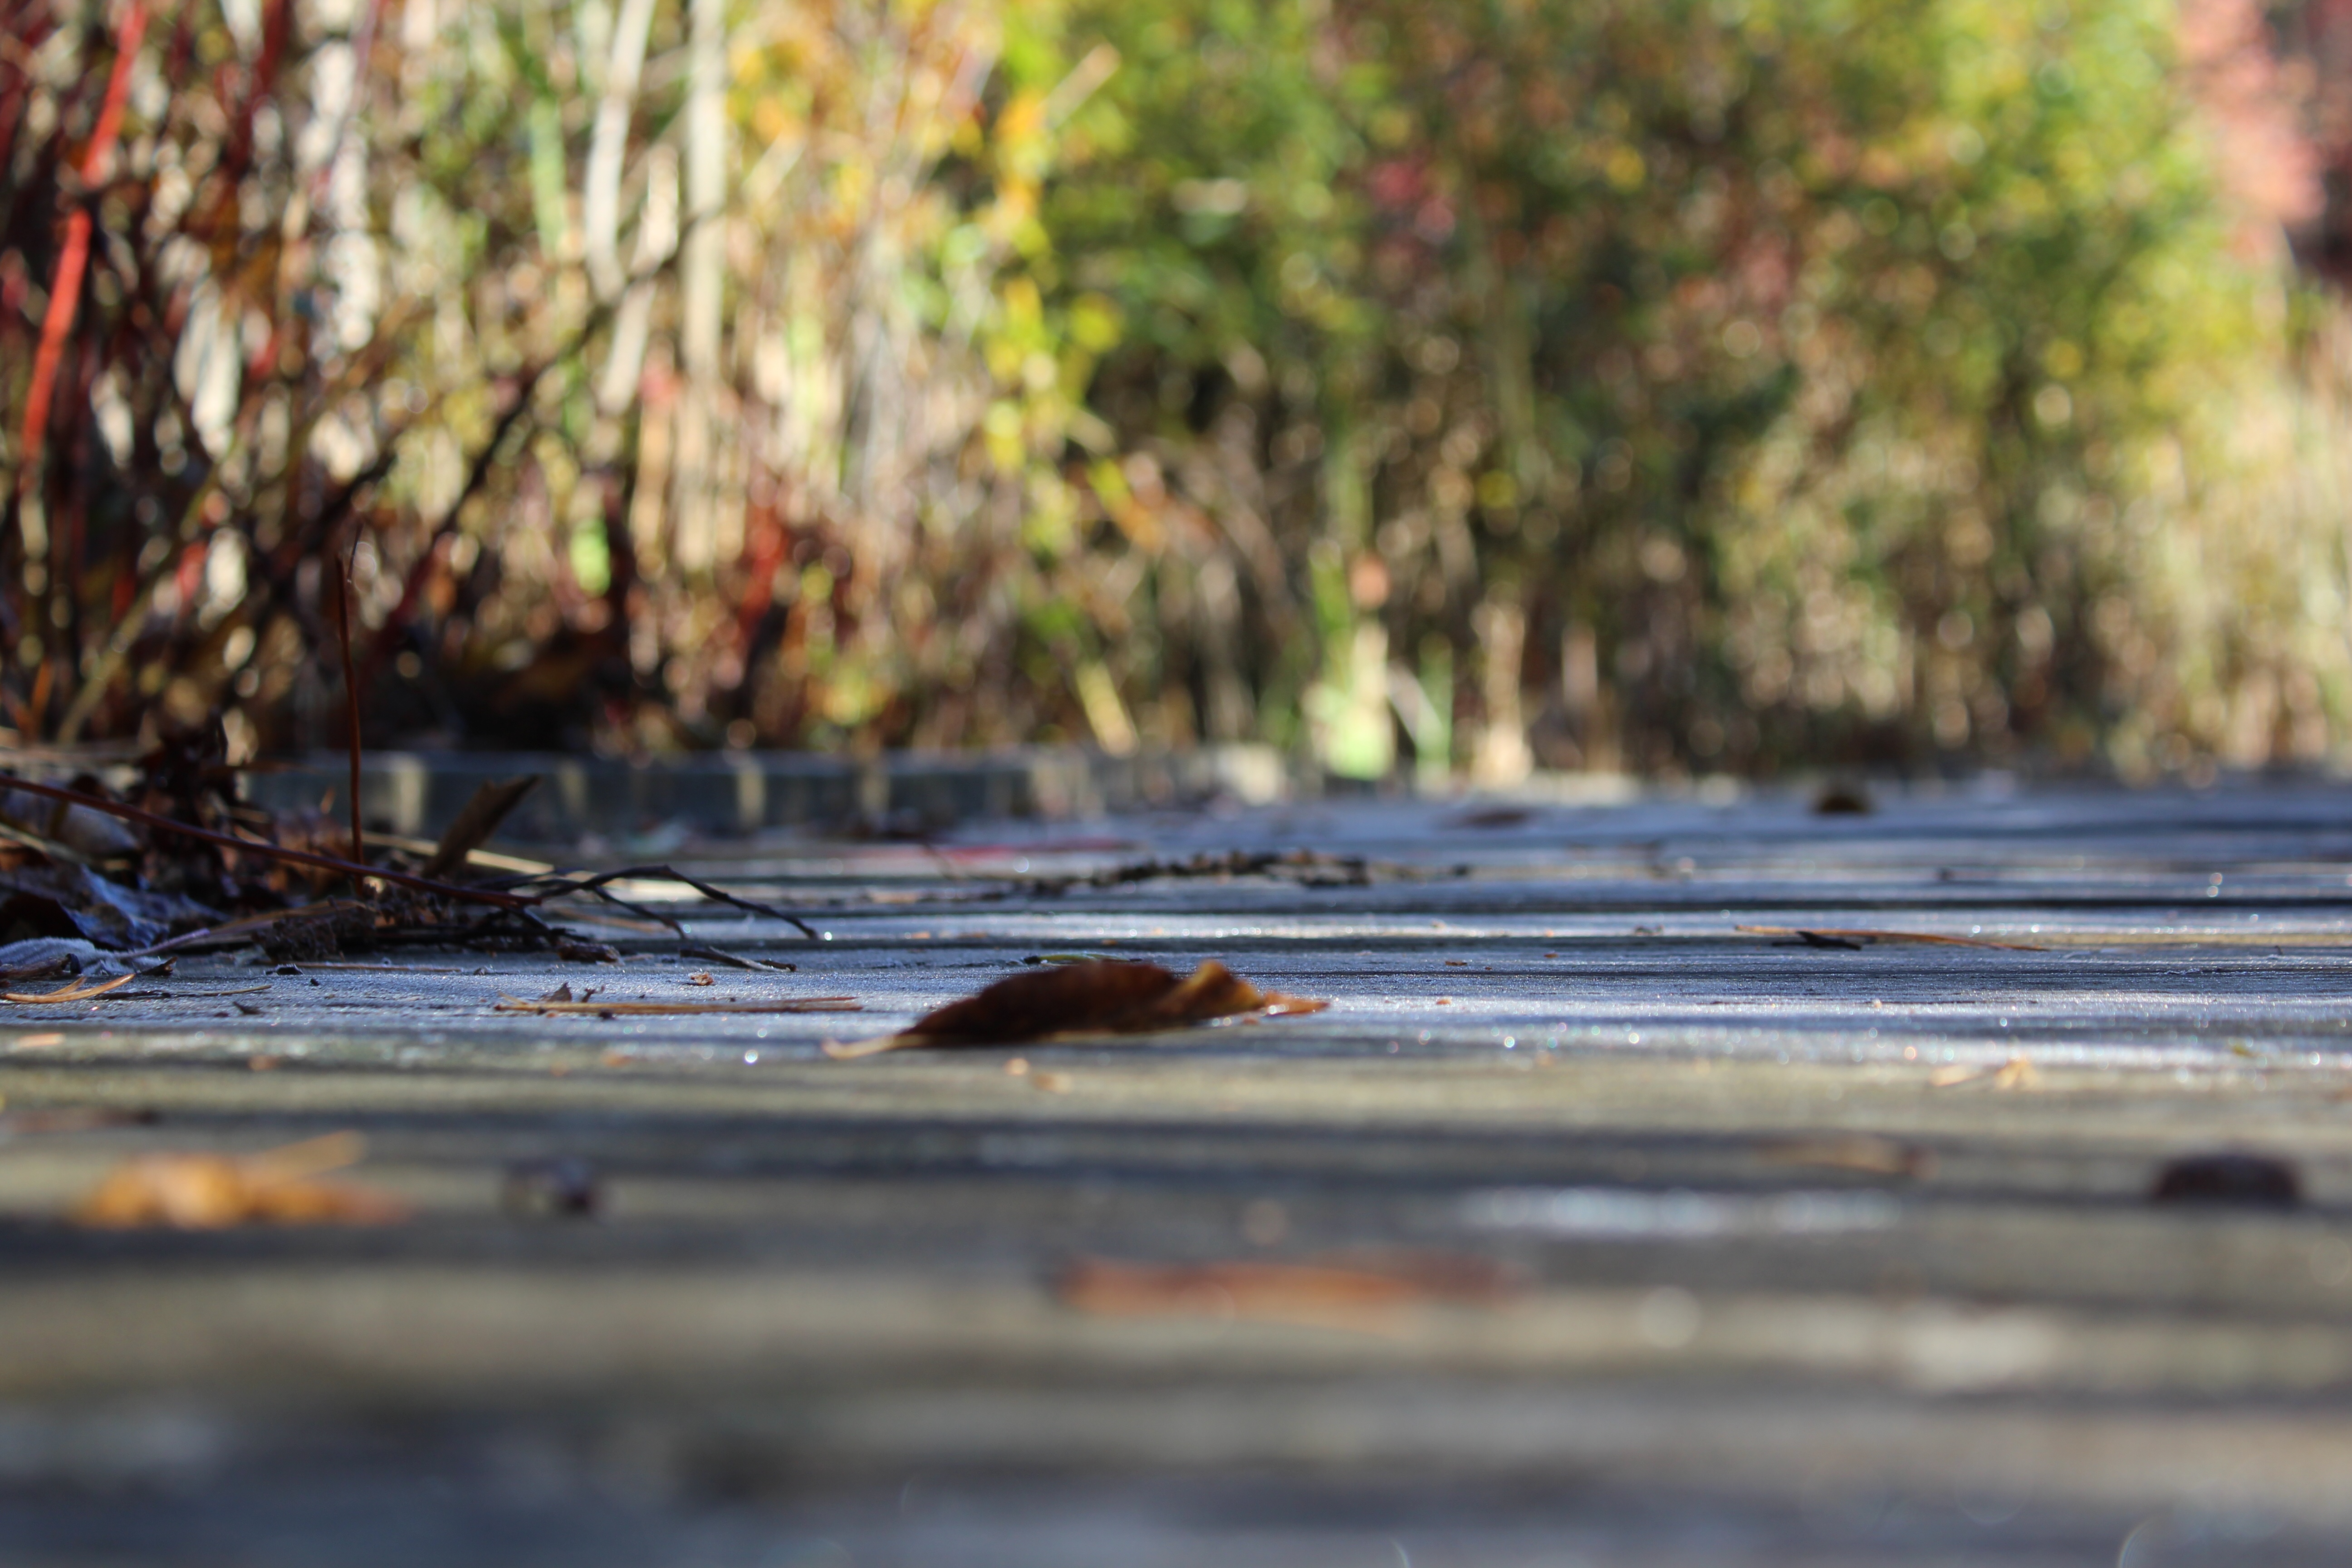 A boardwalk in a marsh with fall foliage in the background.